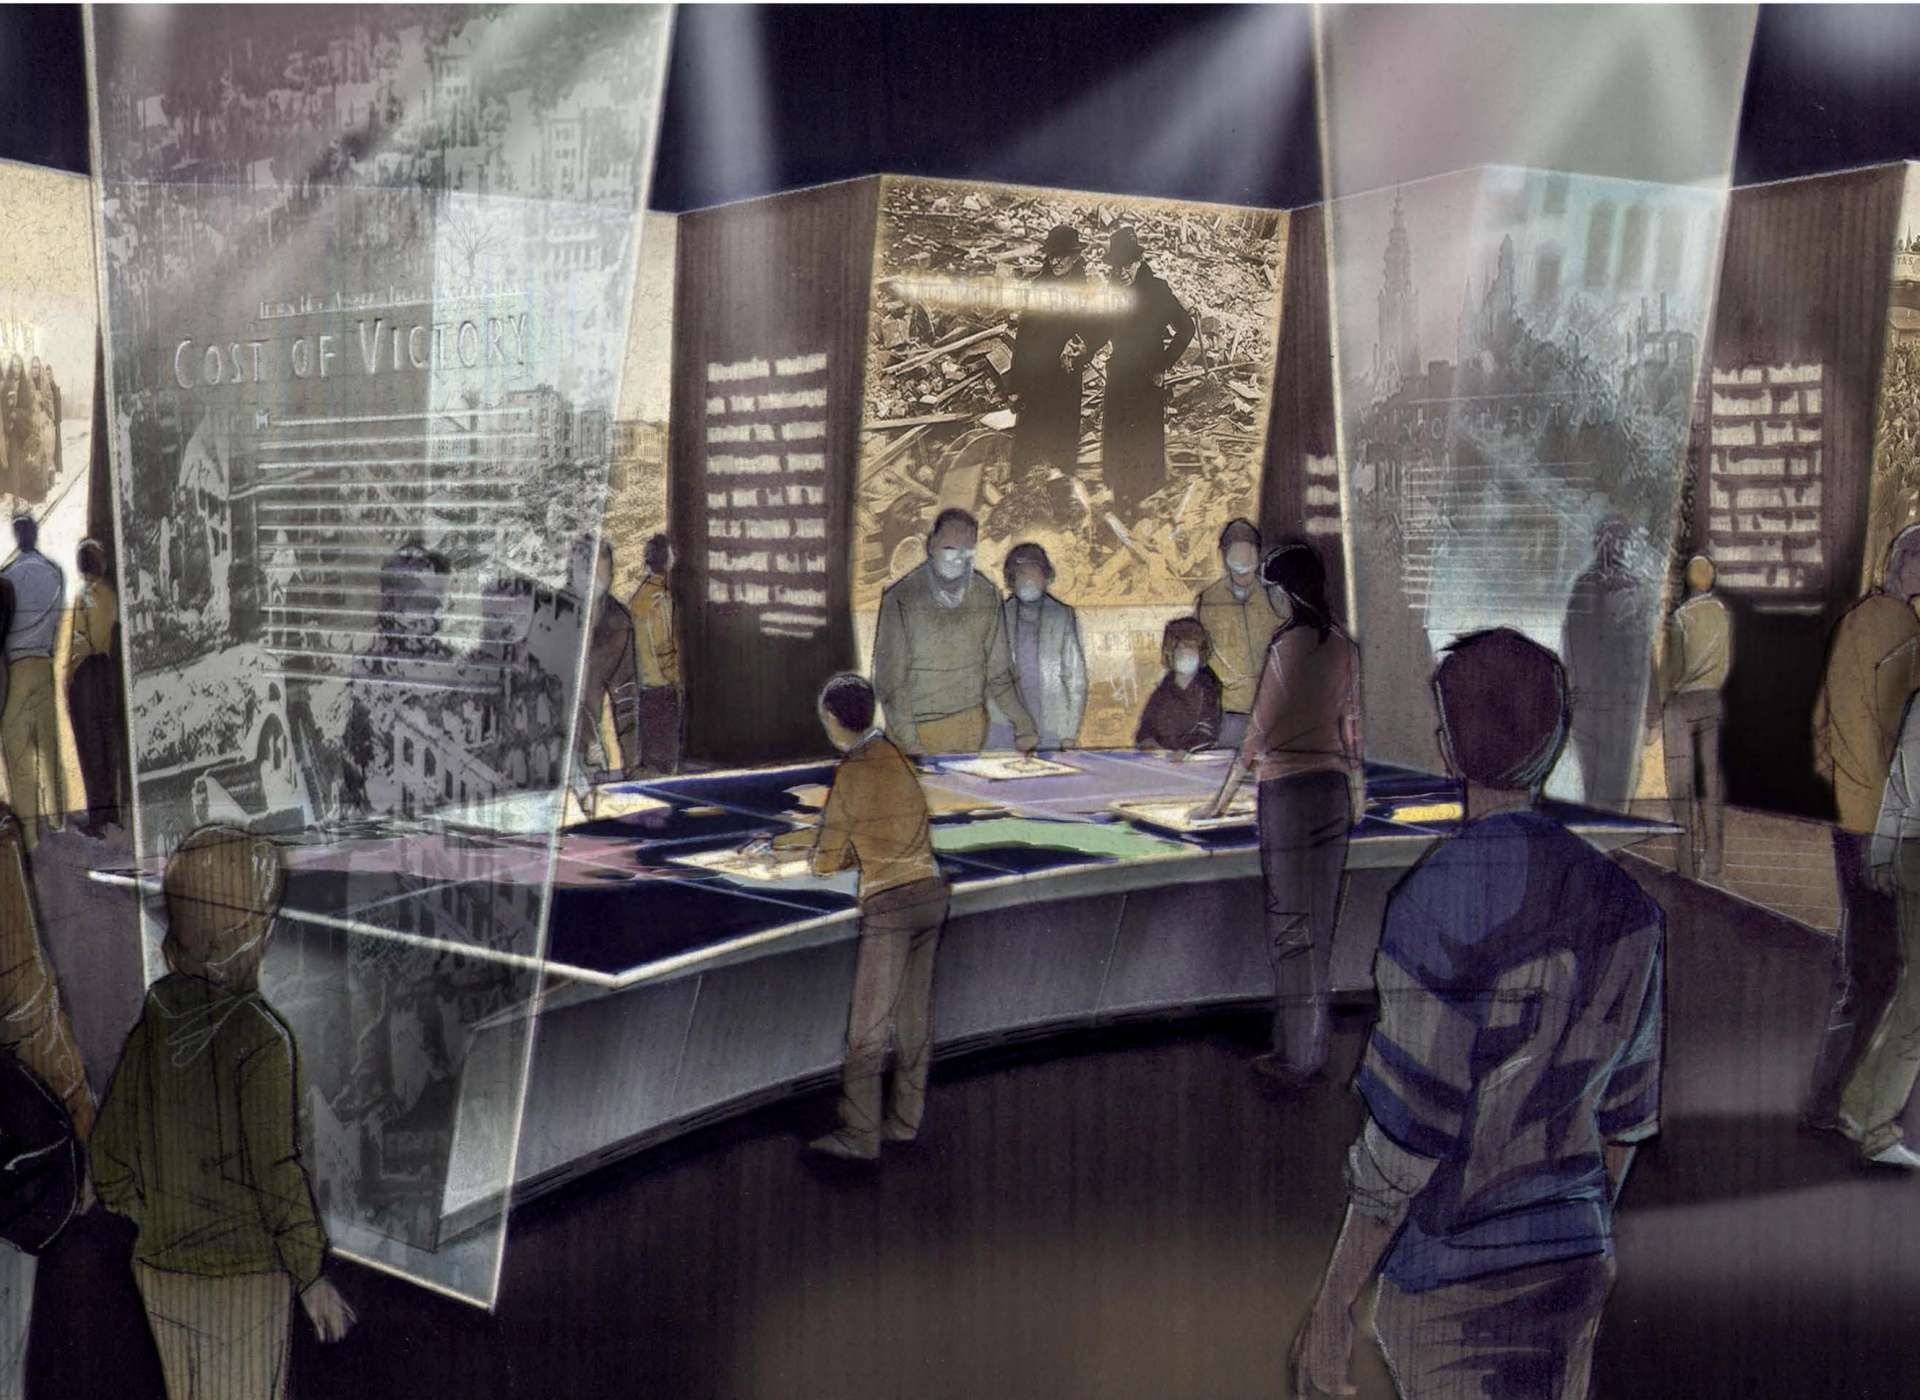 Liberation Pavilion Cost of Victory exhibit rendering